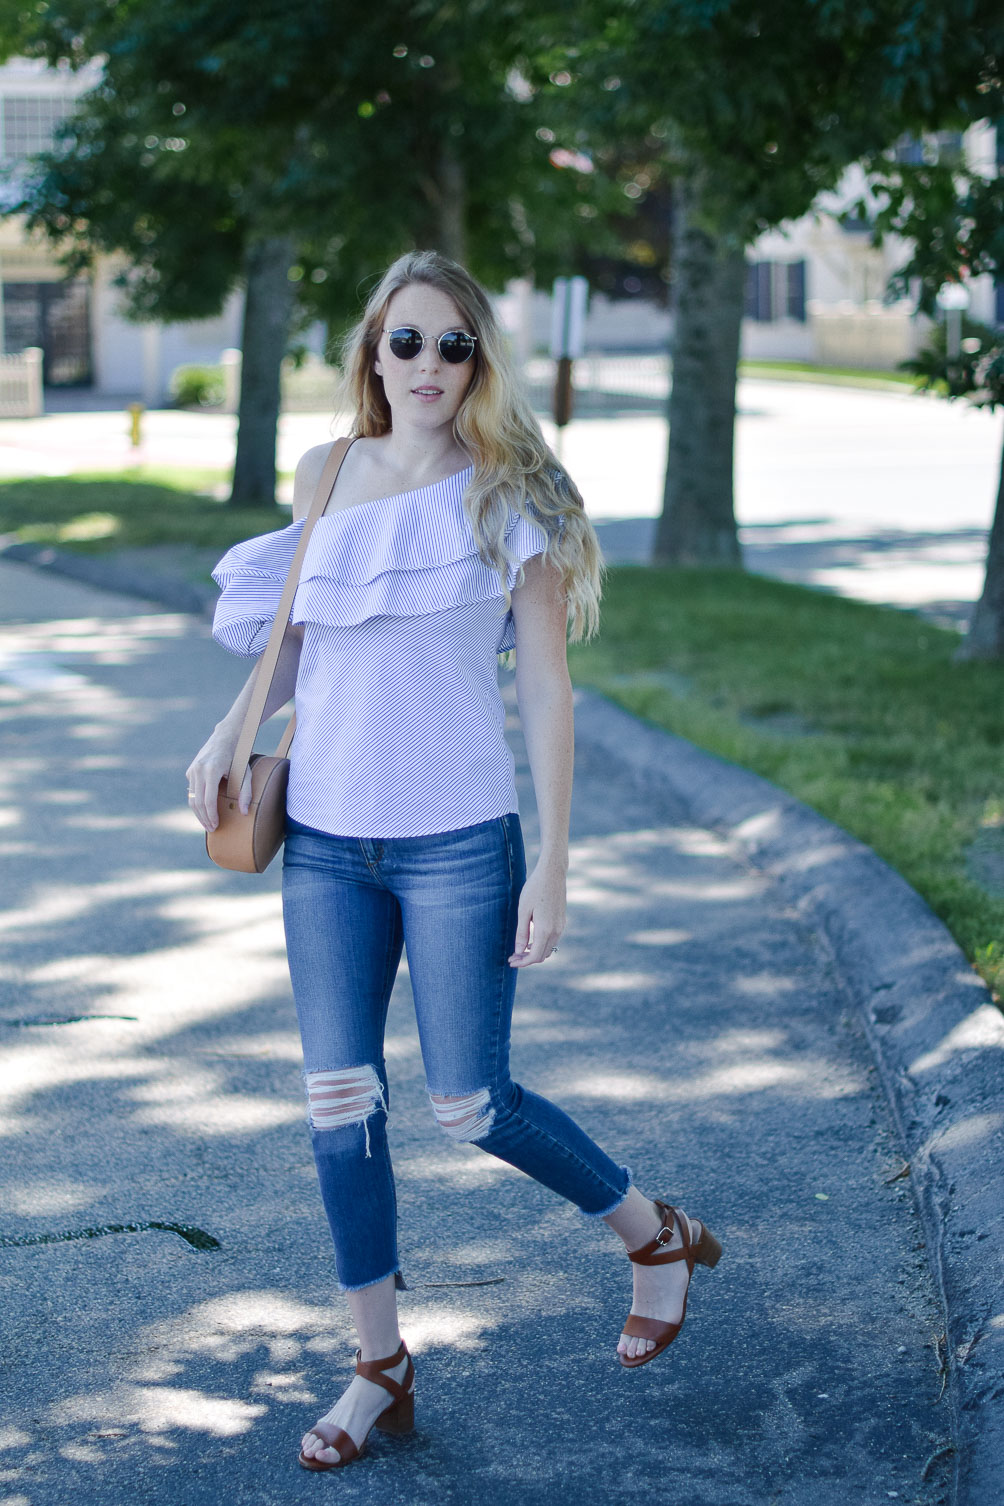 styling a summer outfit with this one shoulder ruffle top and distressed skinny jeans